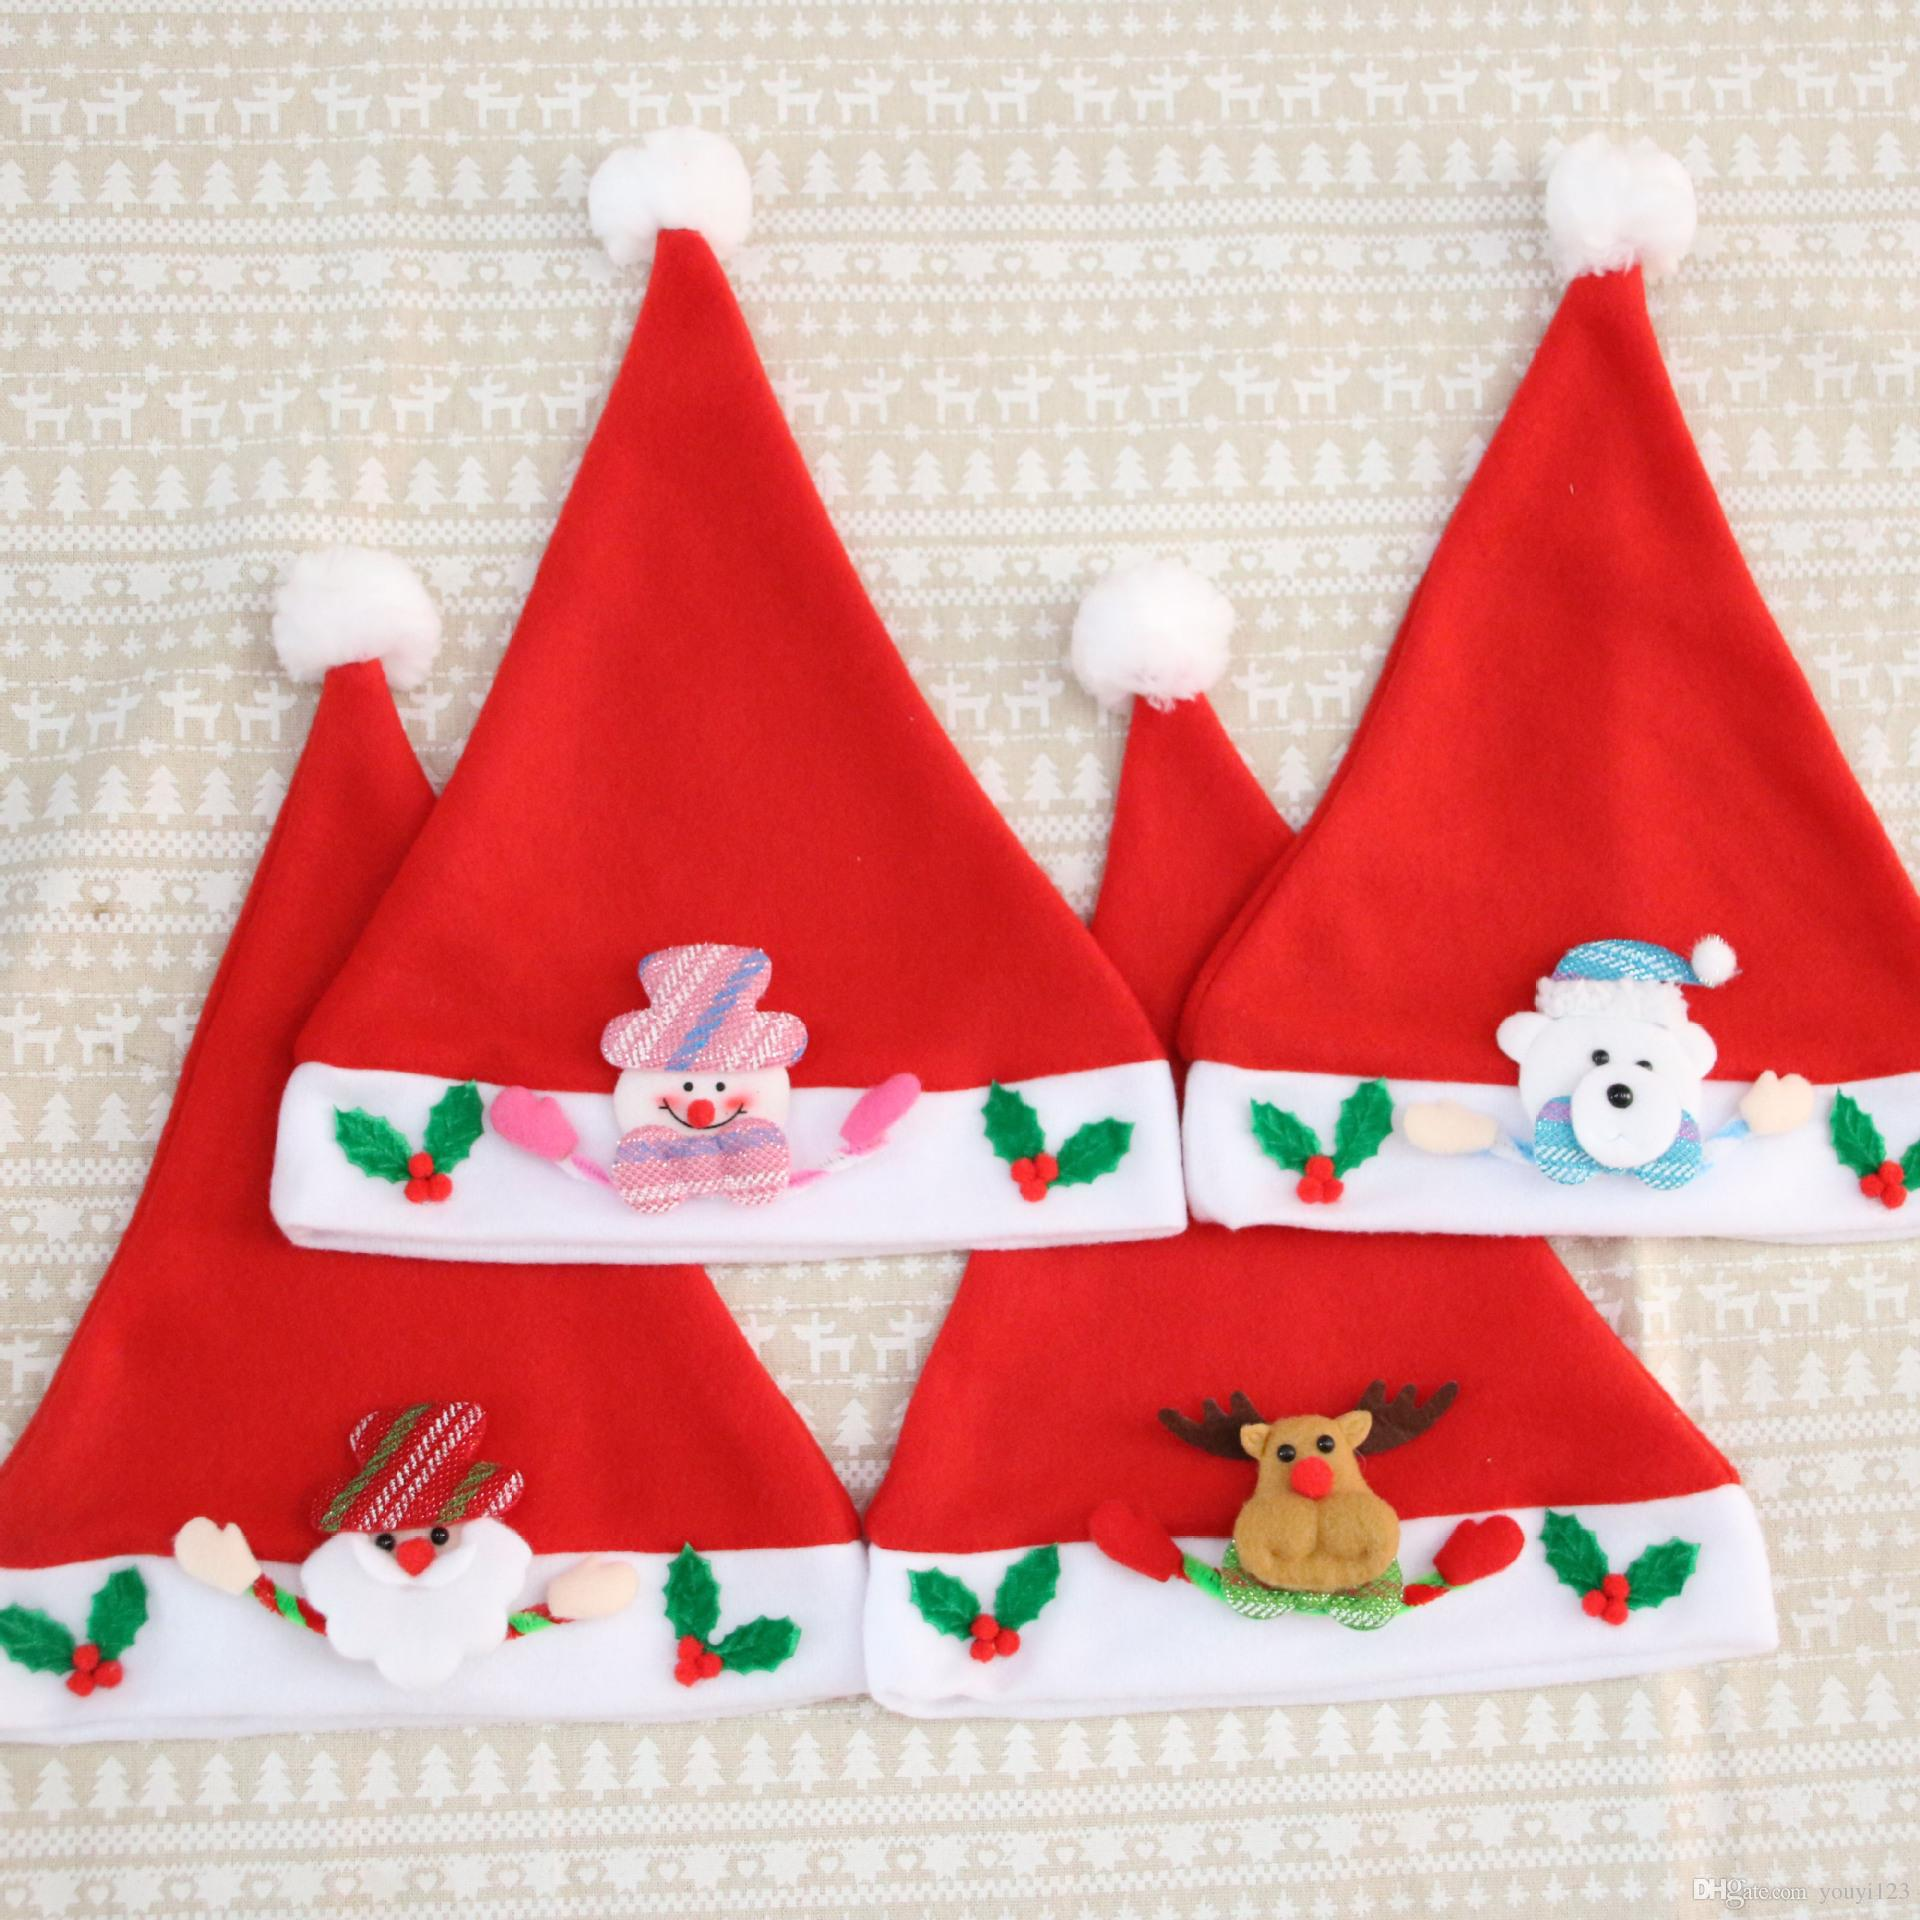 Christmas Hats For Kids.2019 Christmas Decorations Ornaments Christmas Hats 2018 Santa Claus Hat Kids Hats Christmas Gifts Kids Cap Cartoon Cap From Youyi123 Price